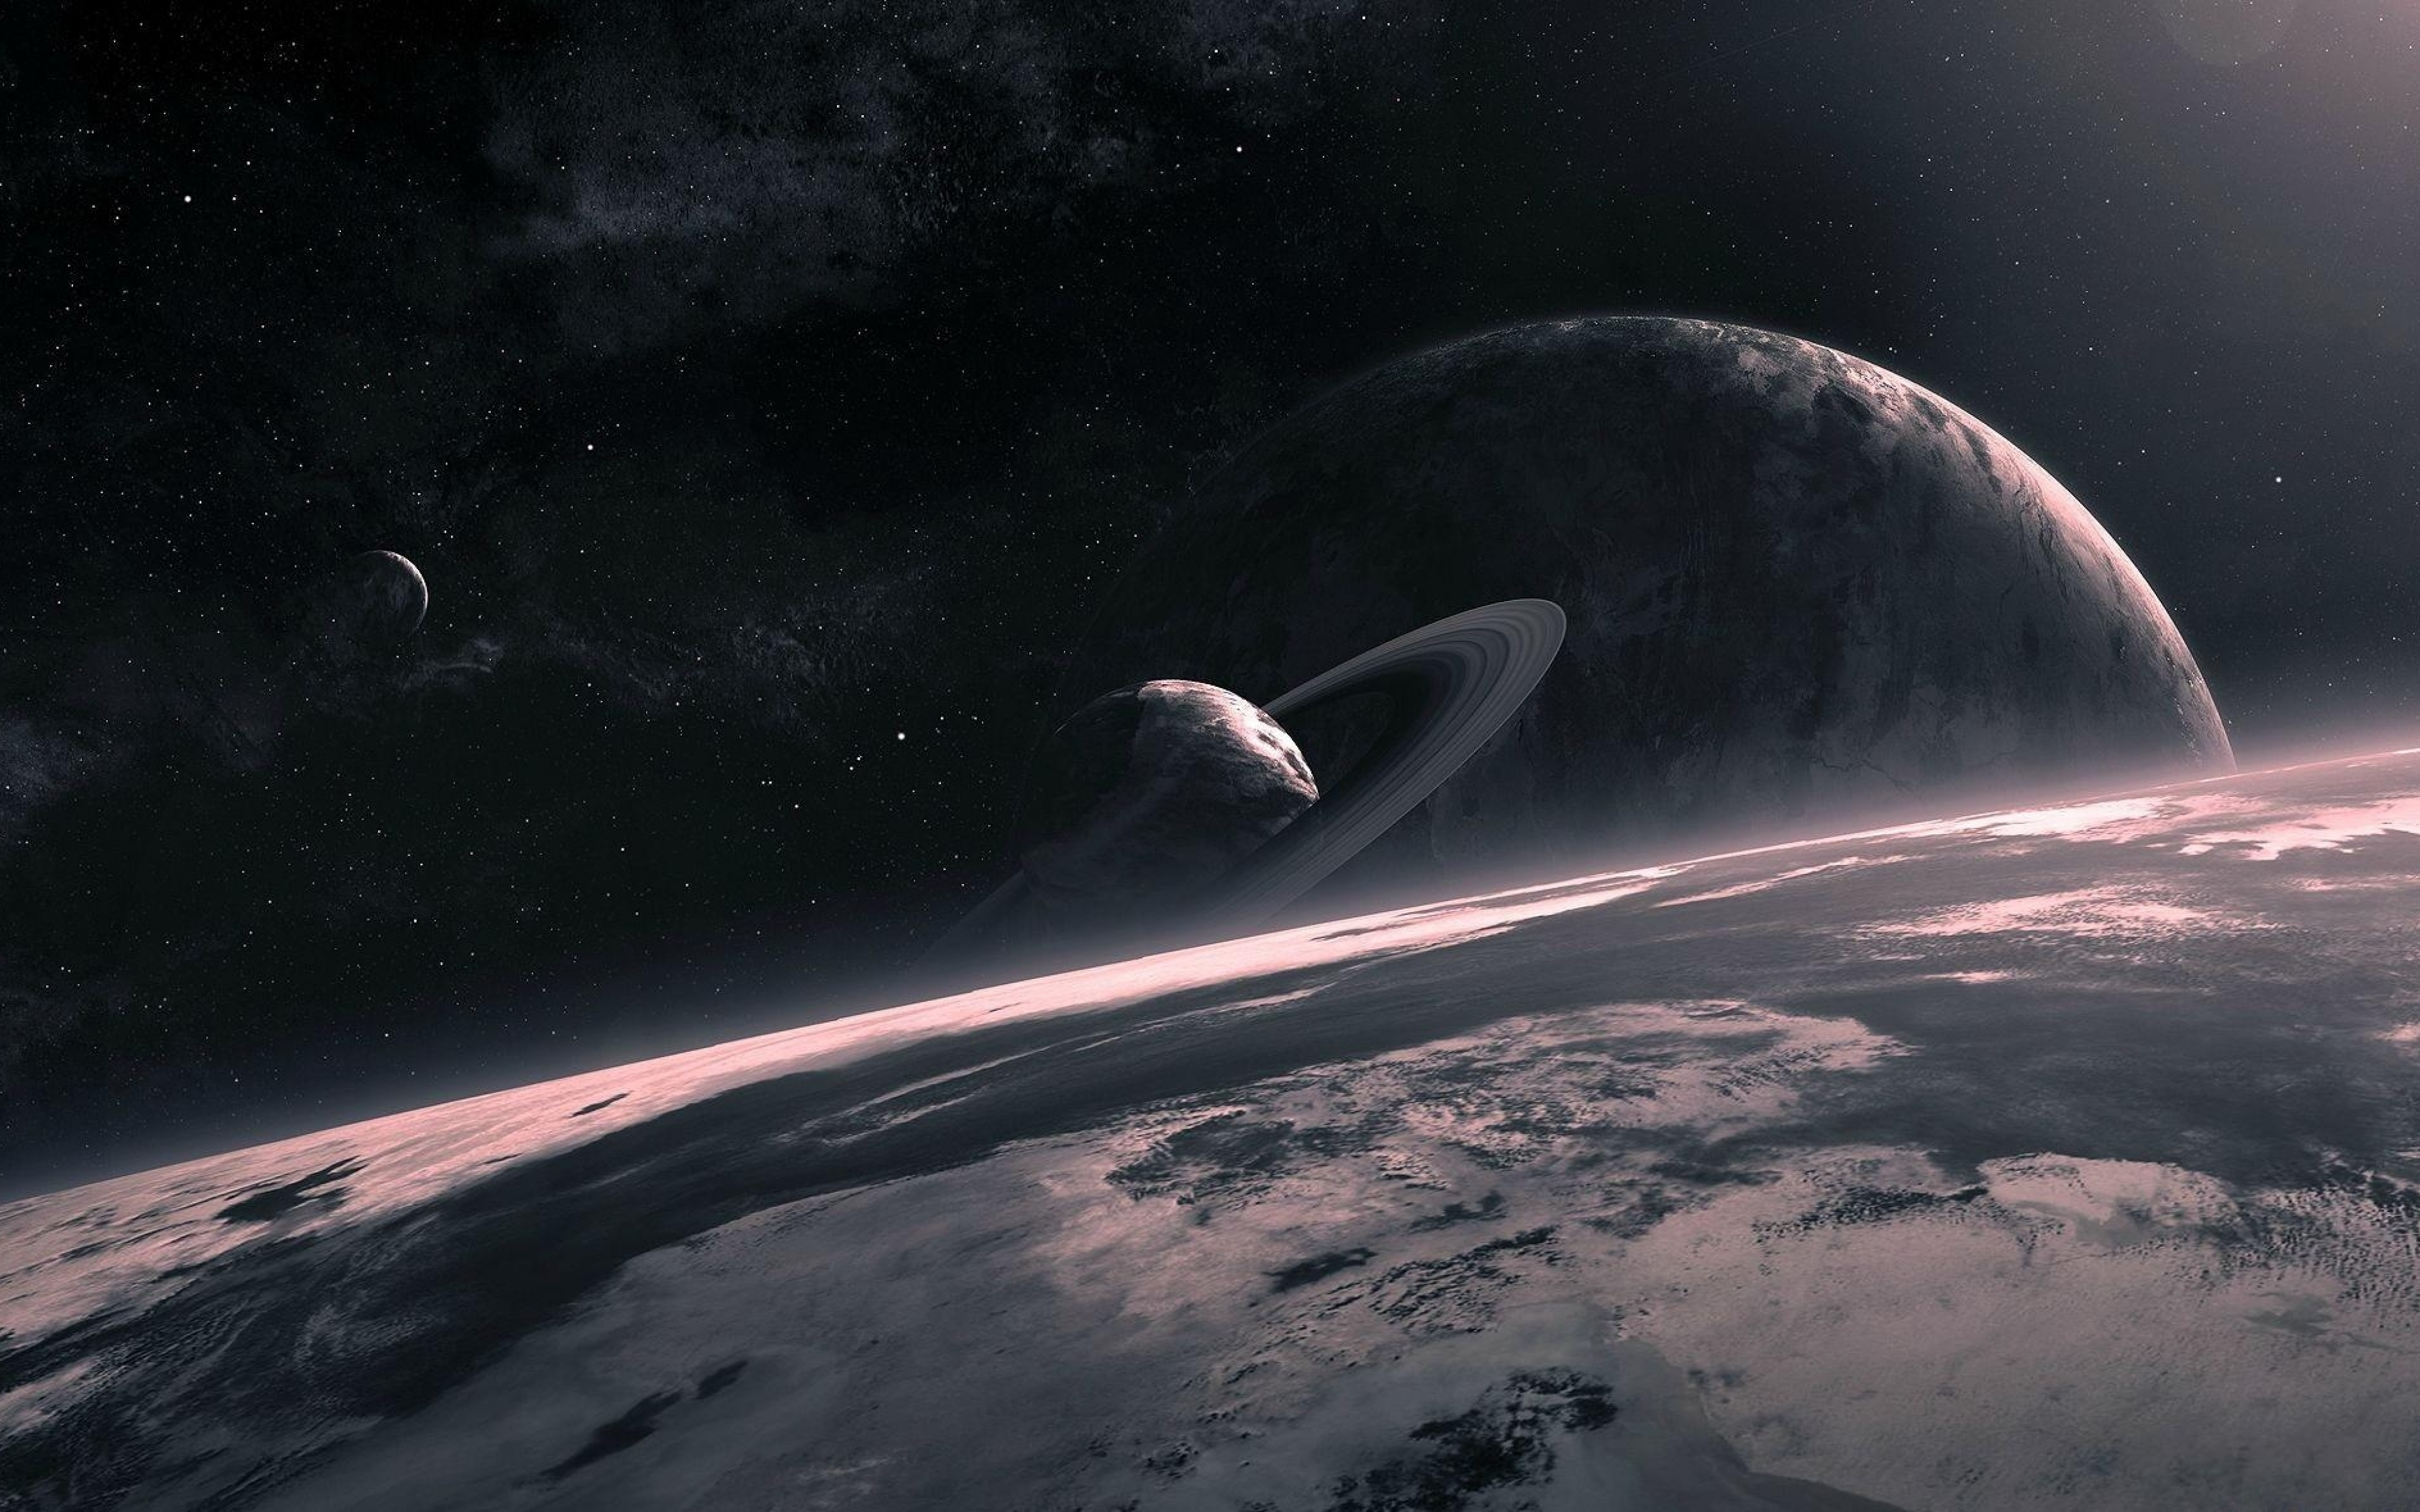 Hd Wallpapers Space Universe